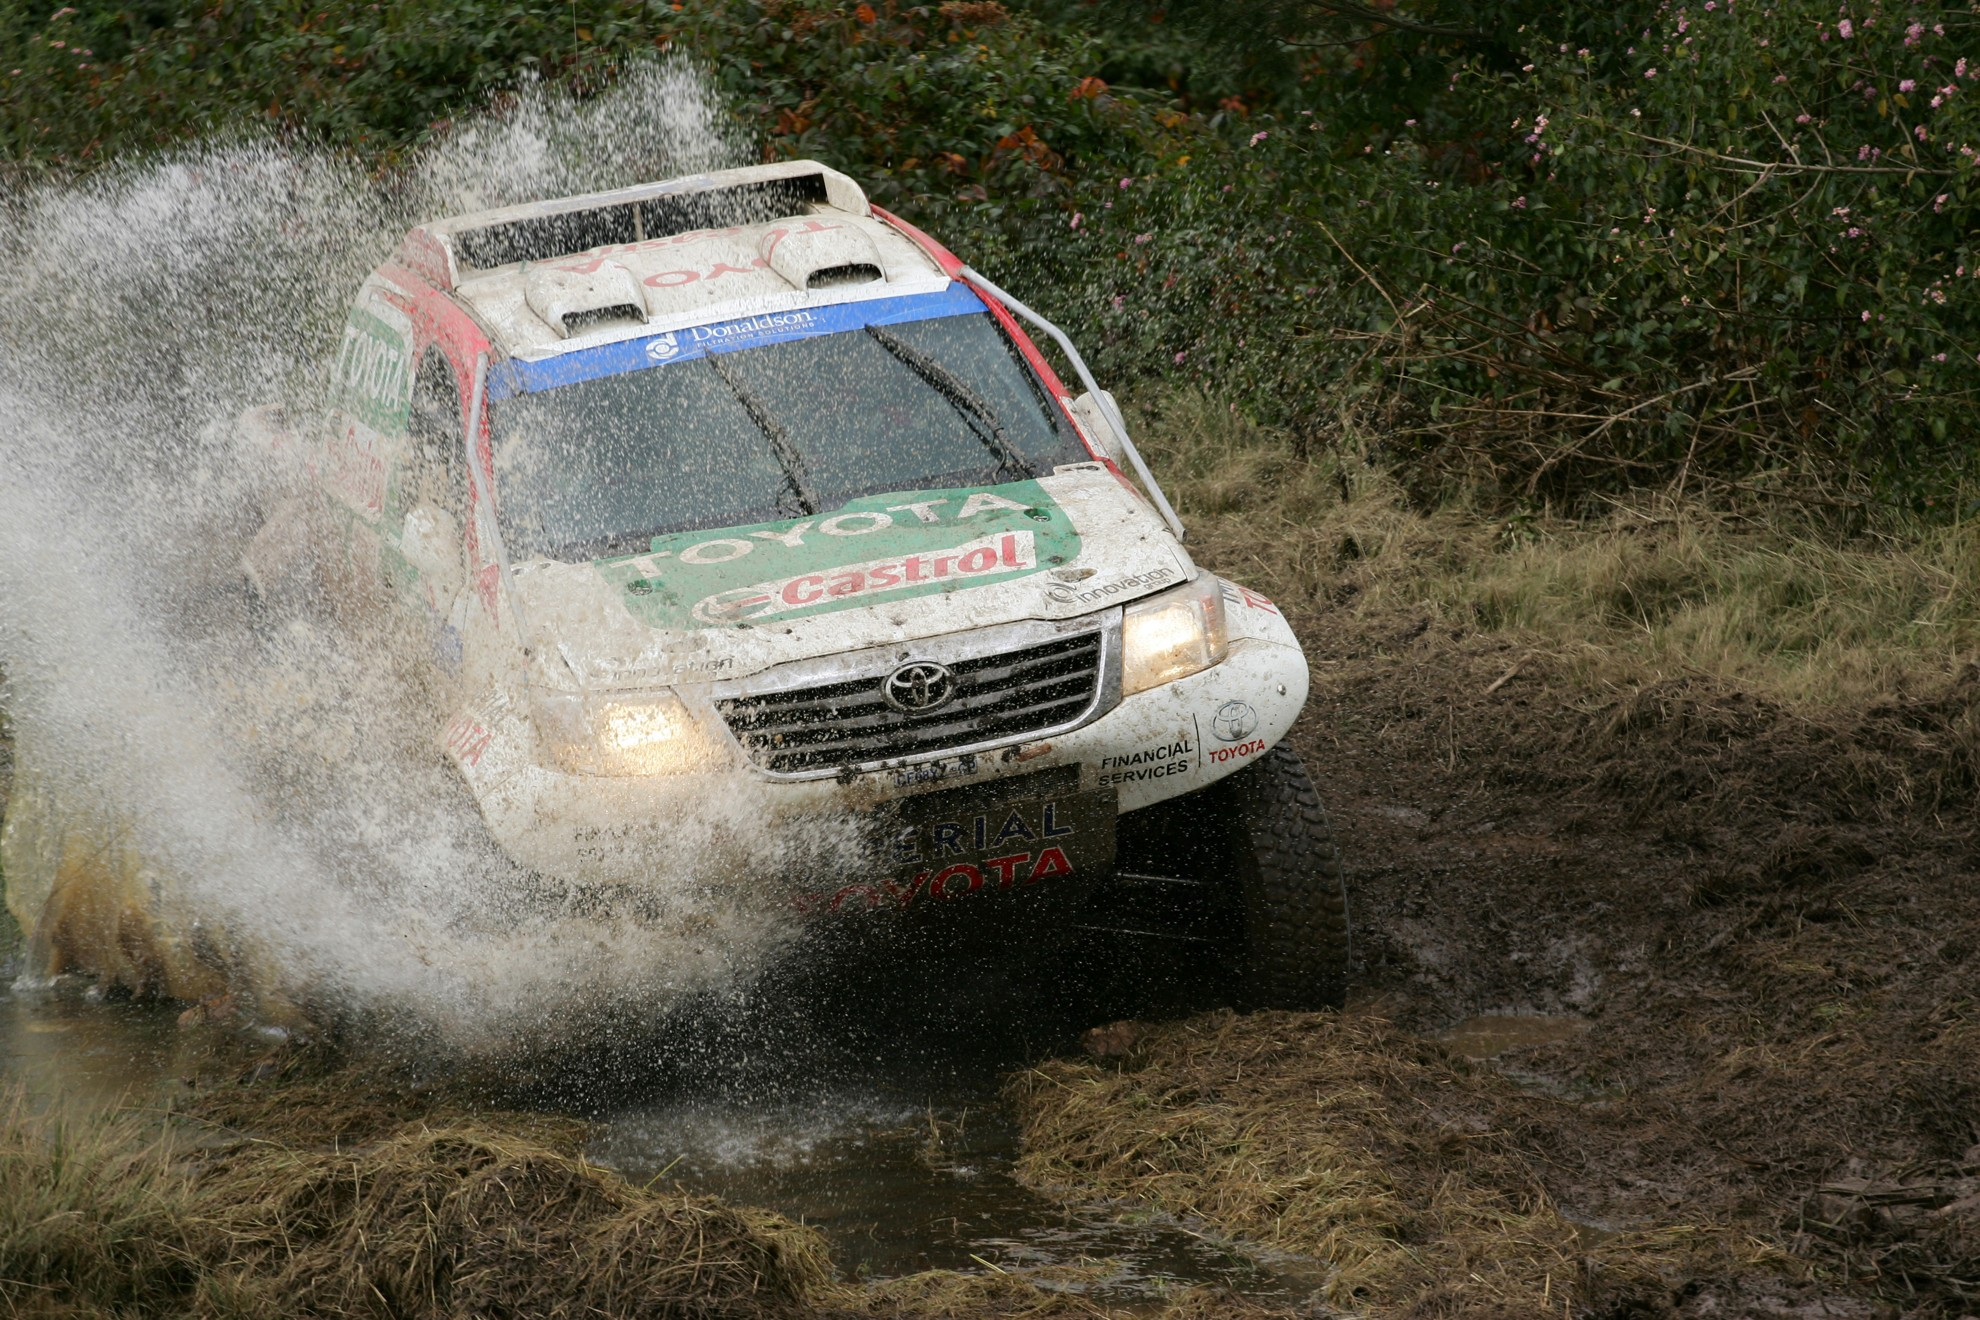 Toyota Hilux Racing